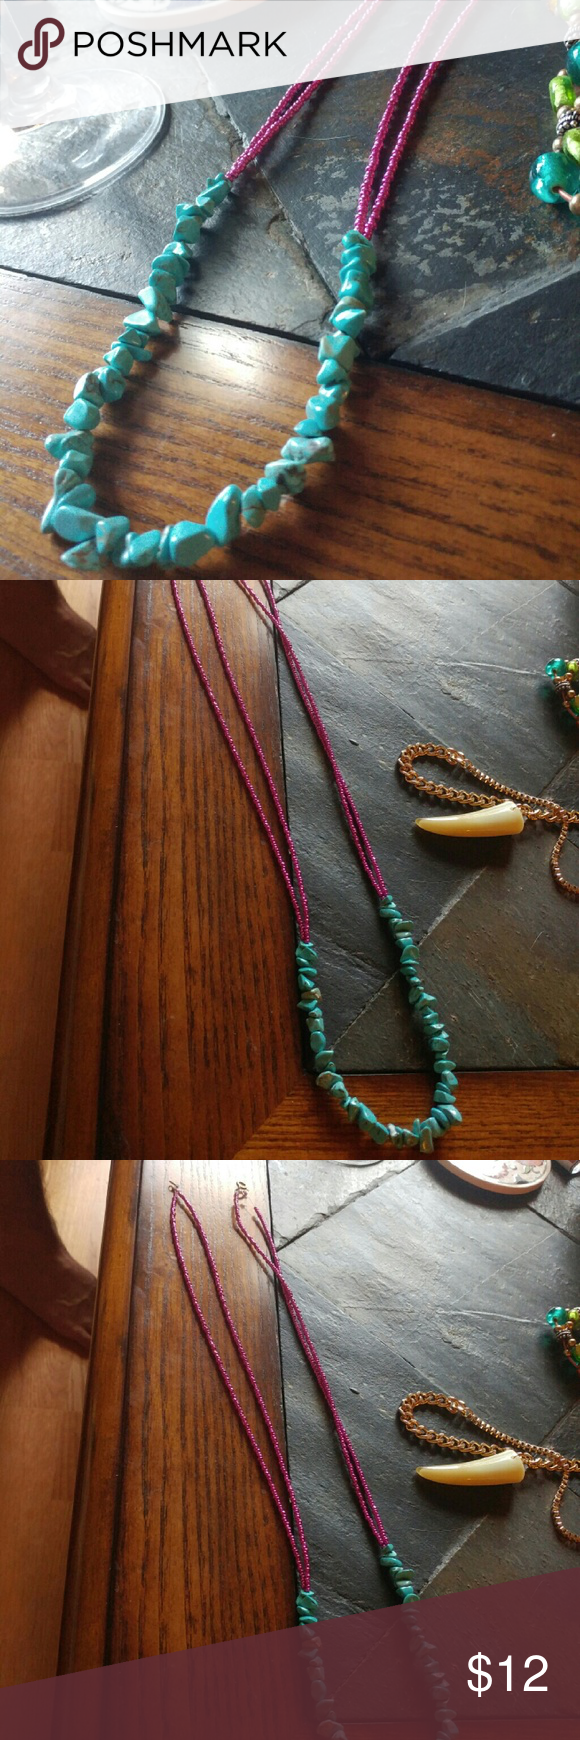 Hand-made Turquoise Necklace Beautiful necklace with turquoise front and center and metallic, magenta beads surrounding. Flexible elastic string with clasp enclosure at back Jewelry